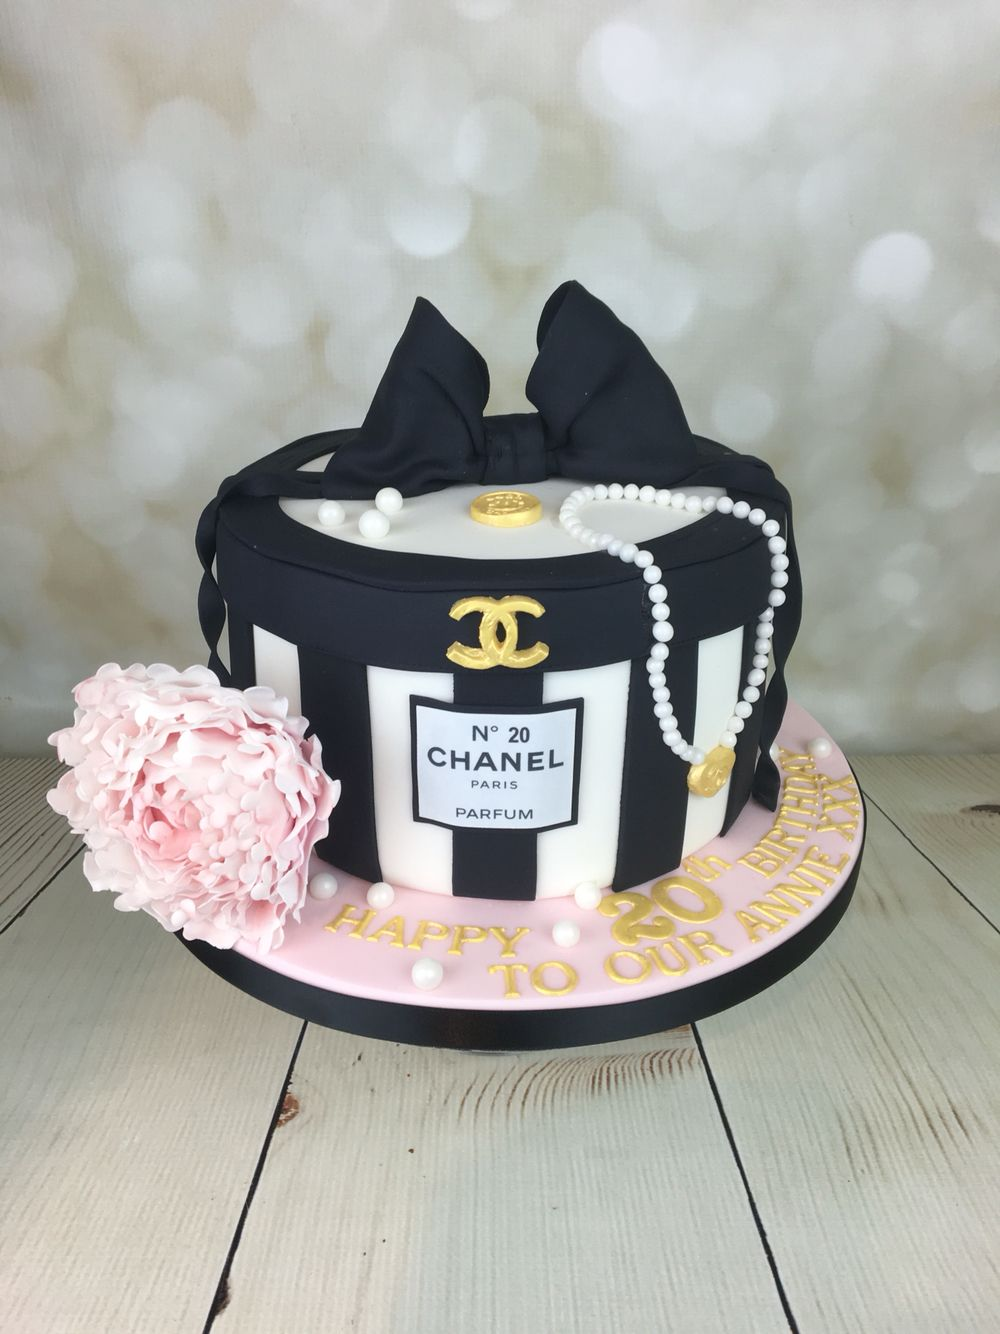 Chanel Hat Box Cake For Annie In Mancot Happy Birthday X